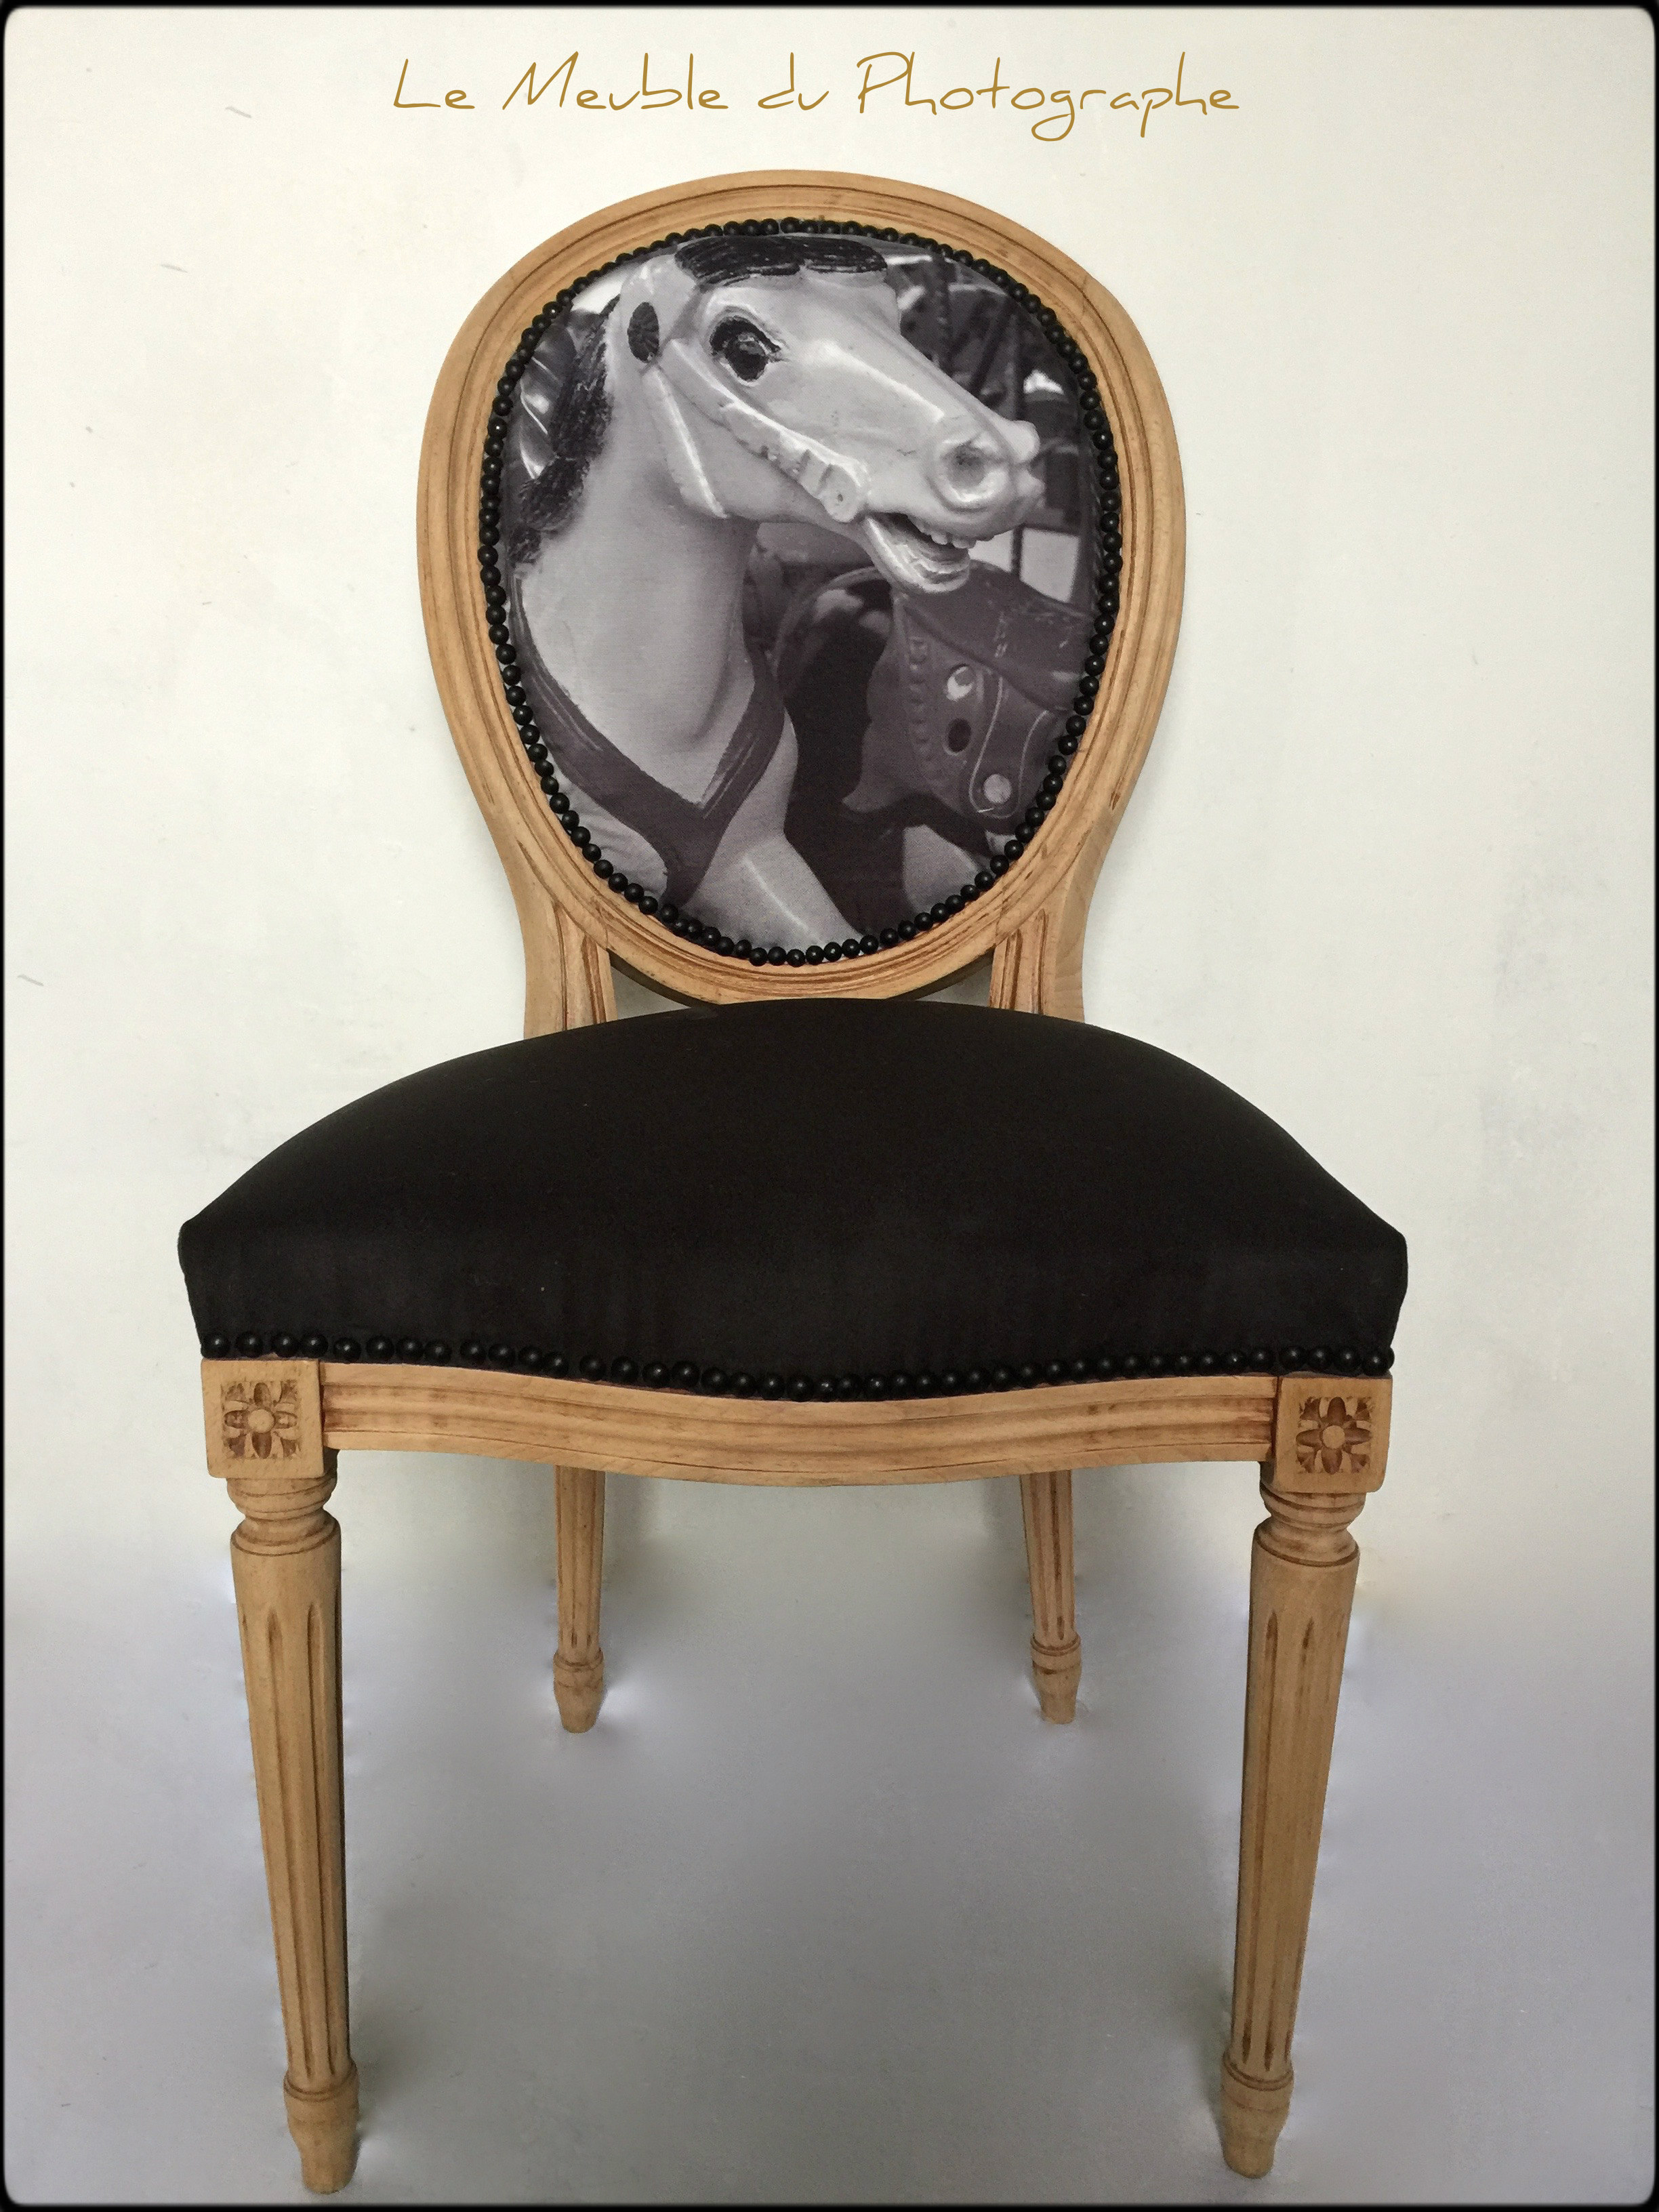 Chaise m daillon originale avec impression photo noir et for Le meuble du photographe